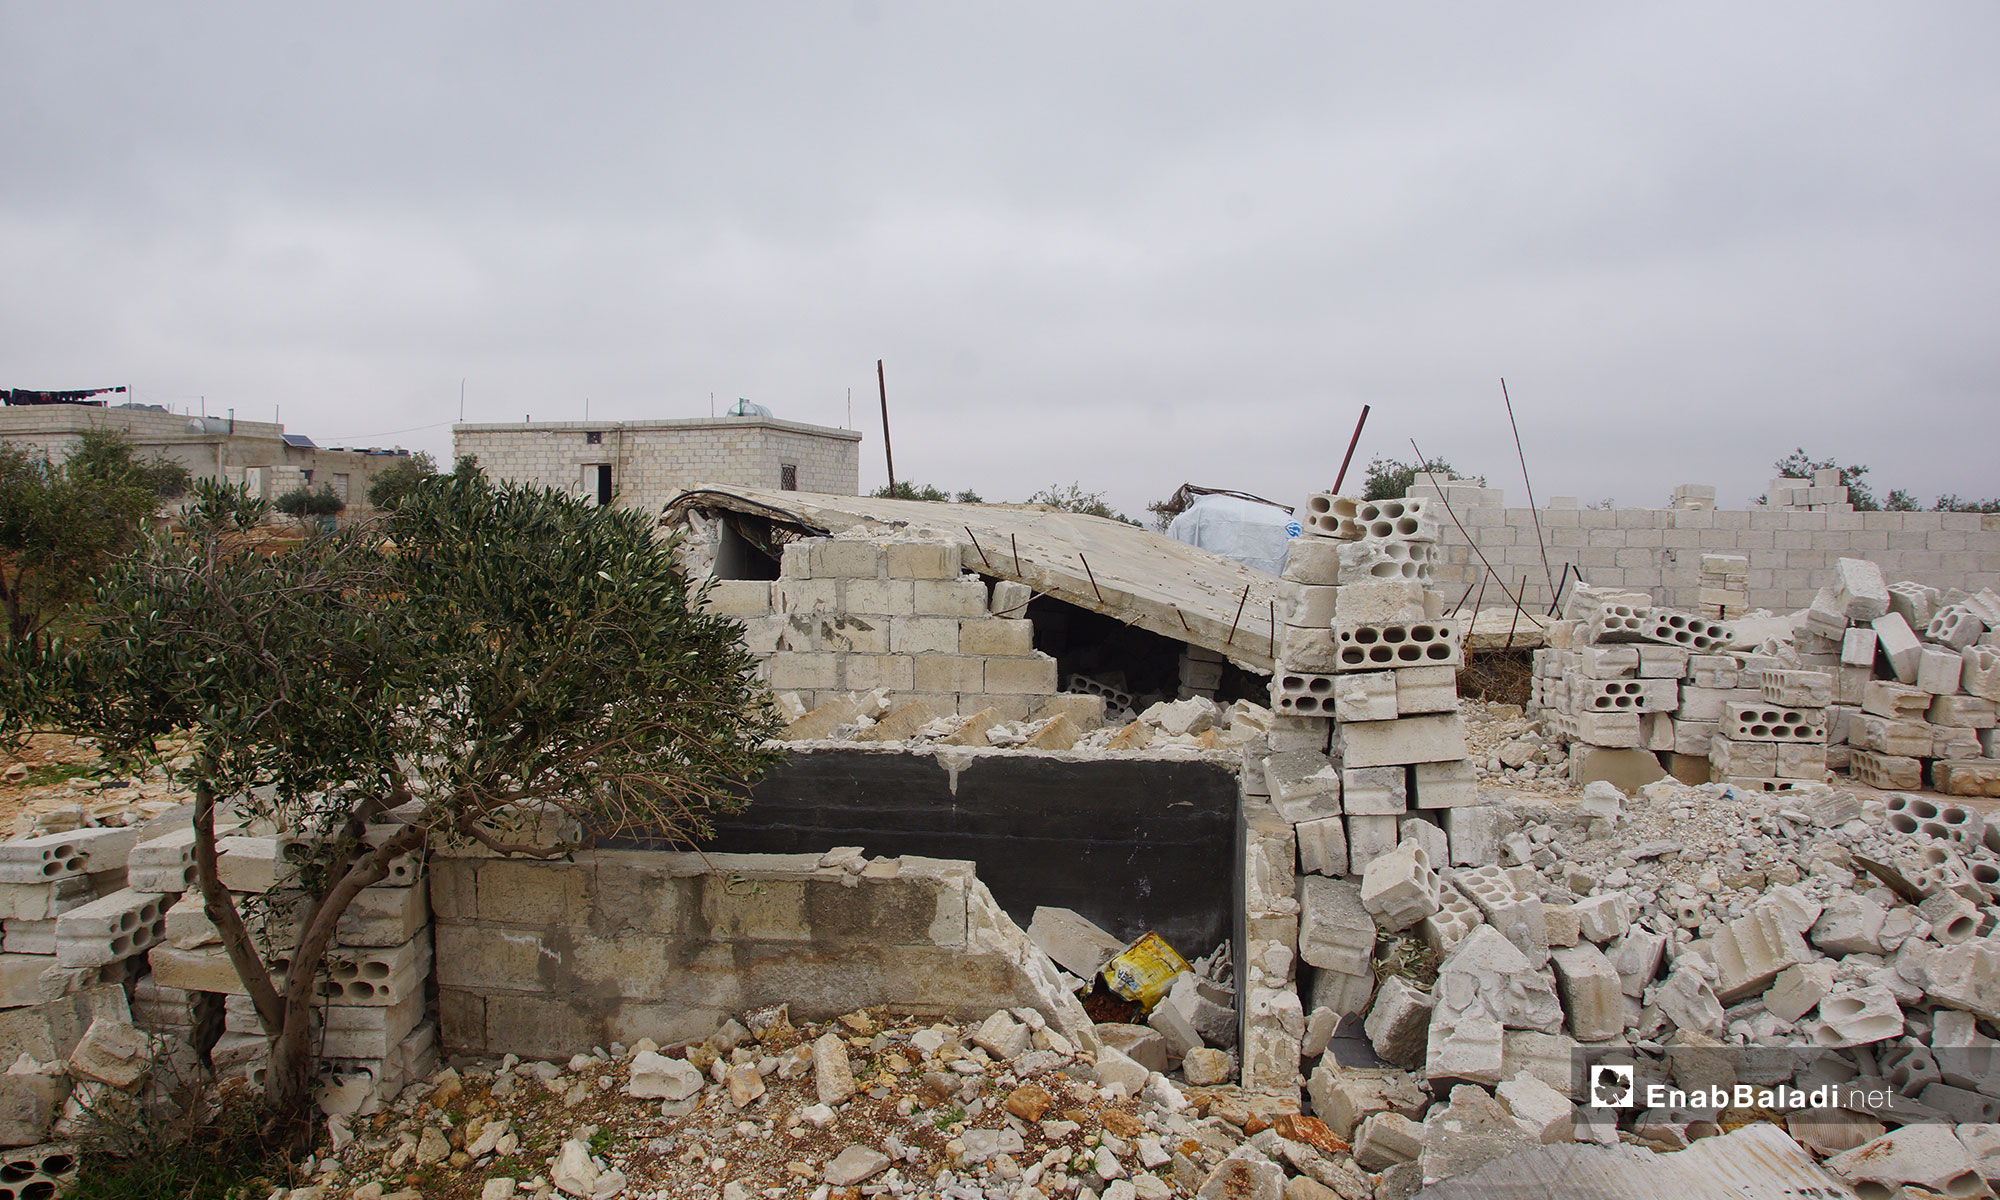 """The people of rural Hama build a new village in rural Idlib, called """"New Karnaz""""– December 18, 2018 (The people of rural Hama build a new village in rural Idlib, called """"New Karnaz""""– December 18, 2018 (Enab Baladi) Baladi)"""